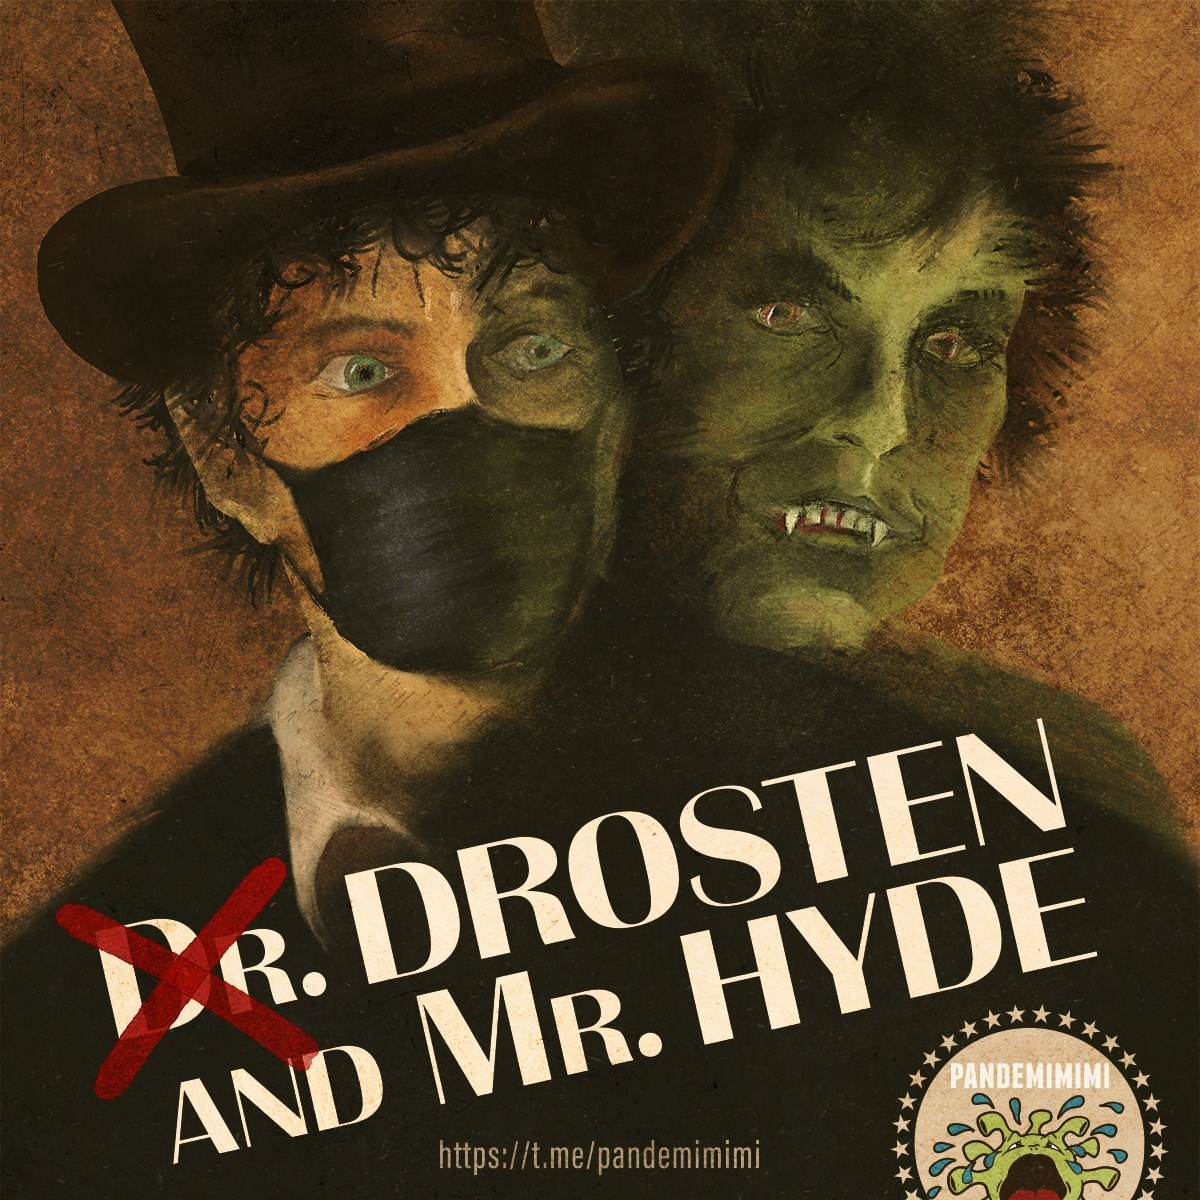 Drosten and Mr. Hyde, 14.12.2020